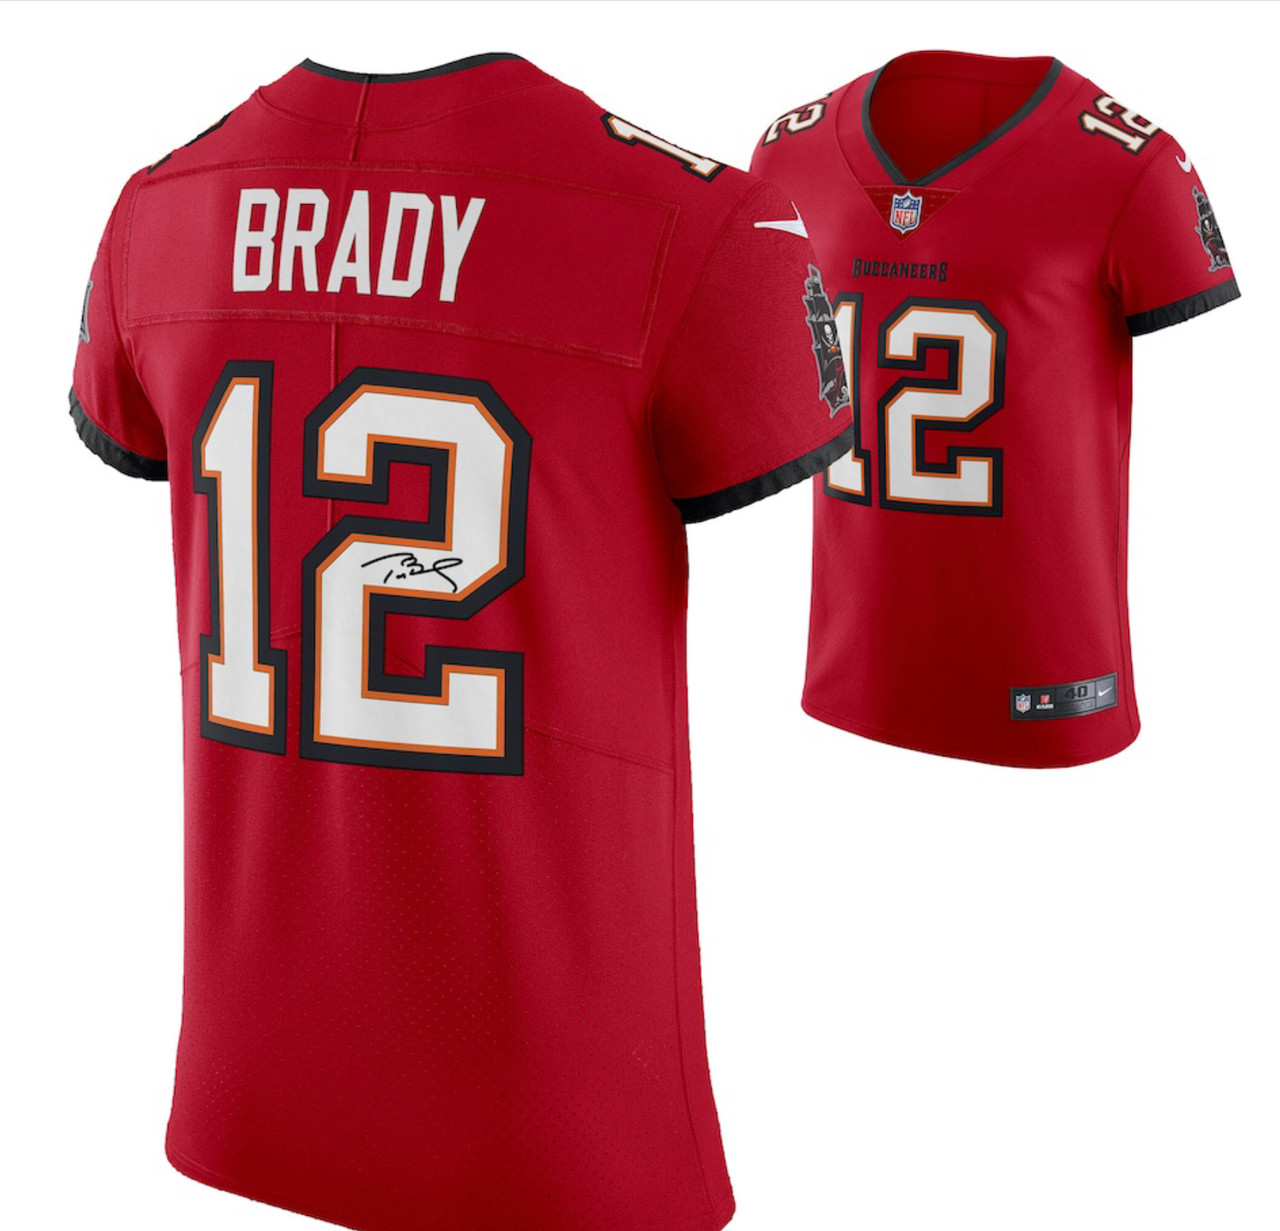 Coming Soon: Tom Brady Tampa Bay Buccaneers Autographed Nike Game Player Red Replica Jersey